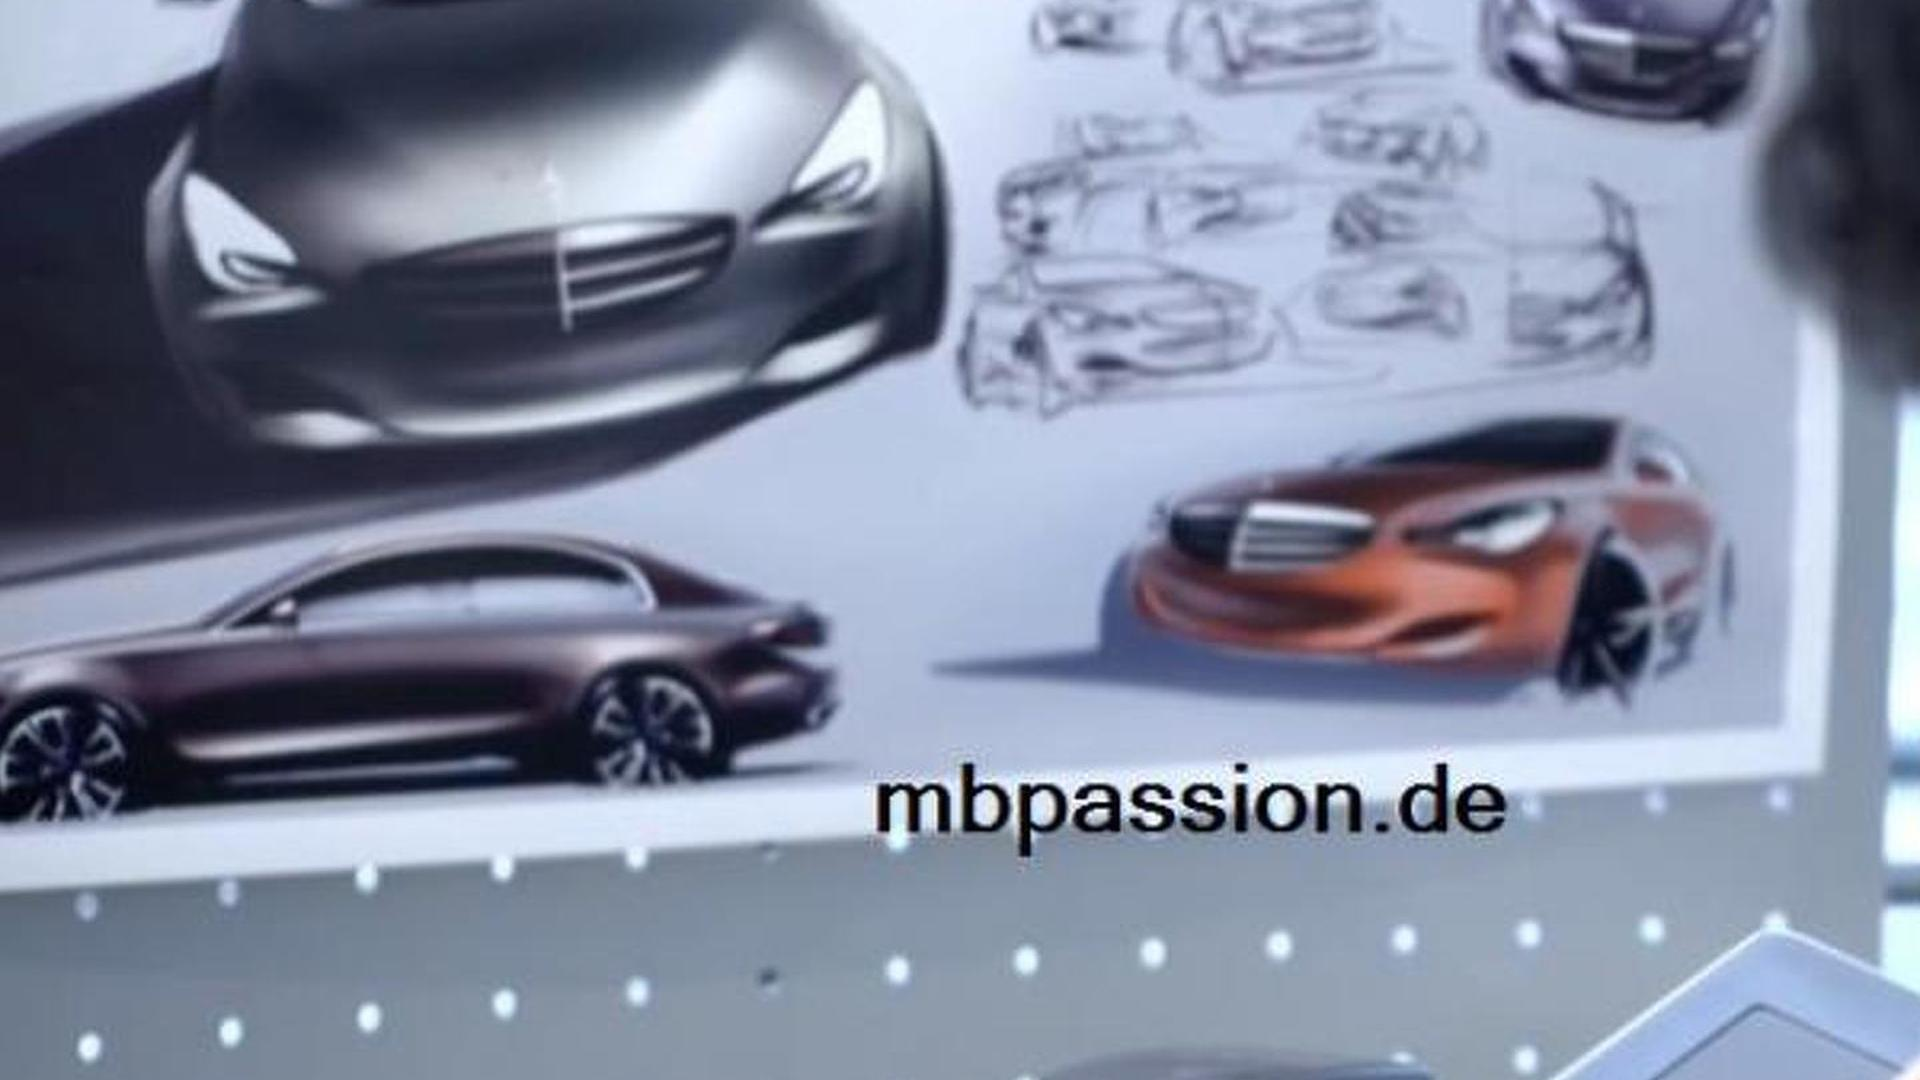 Mysterious Mercedes rendering surface online, is it the next-generation E-Class?